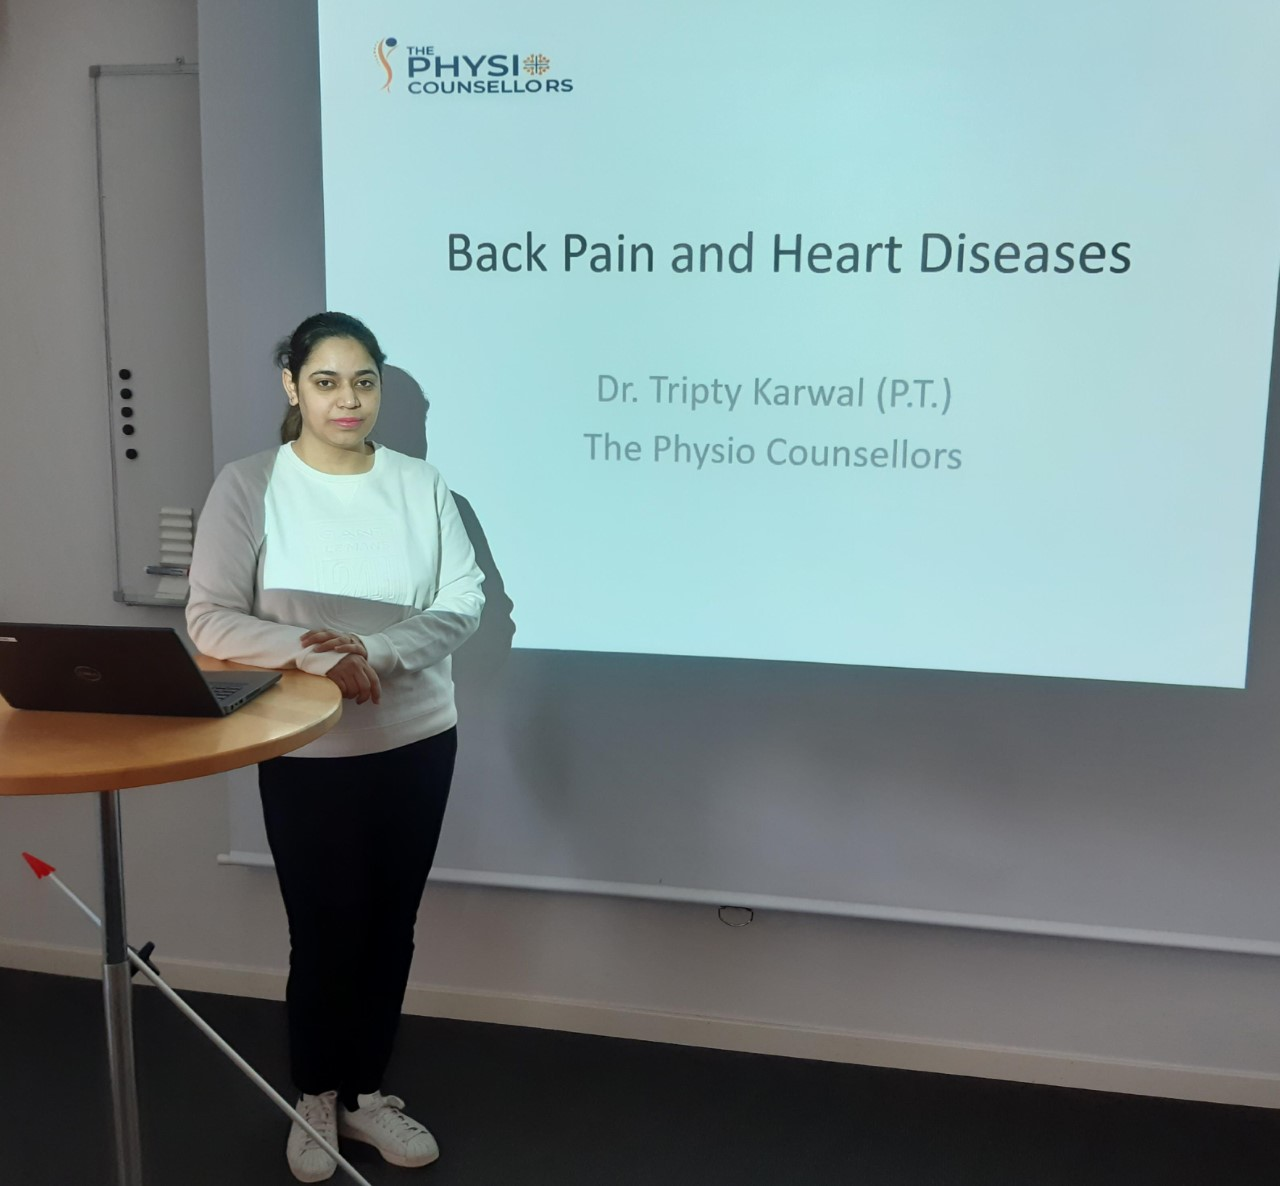 Back Pain and Heart Diseases